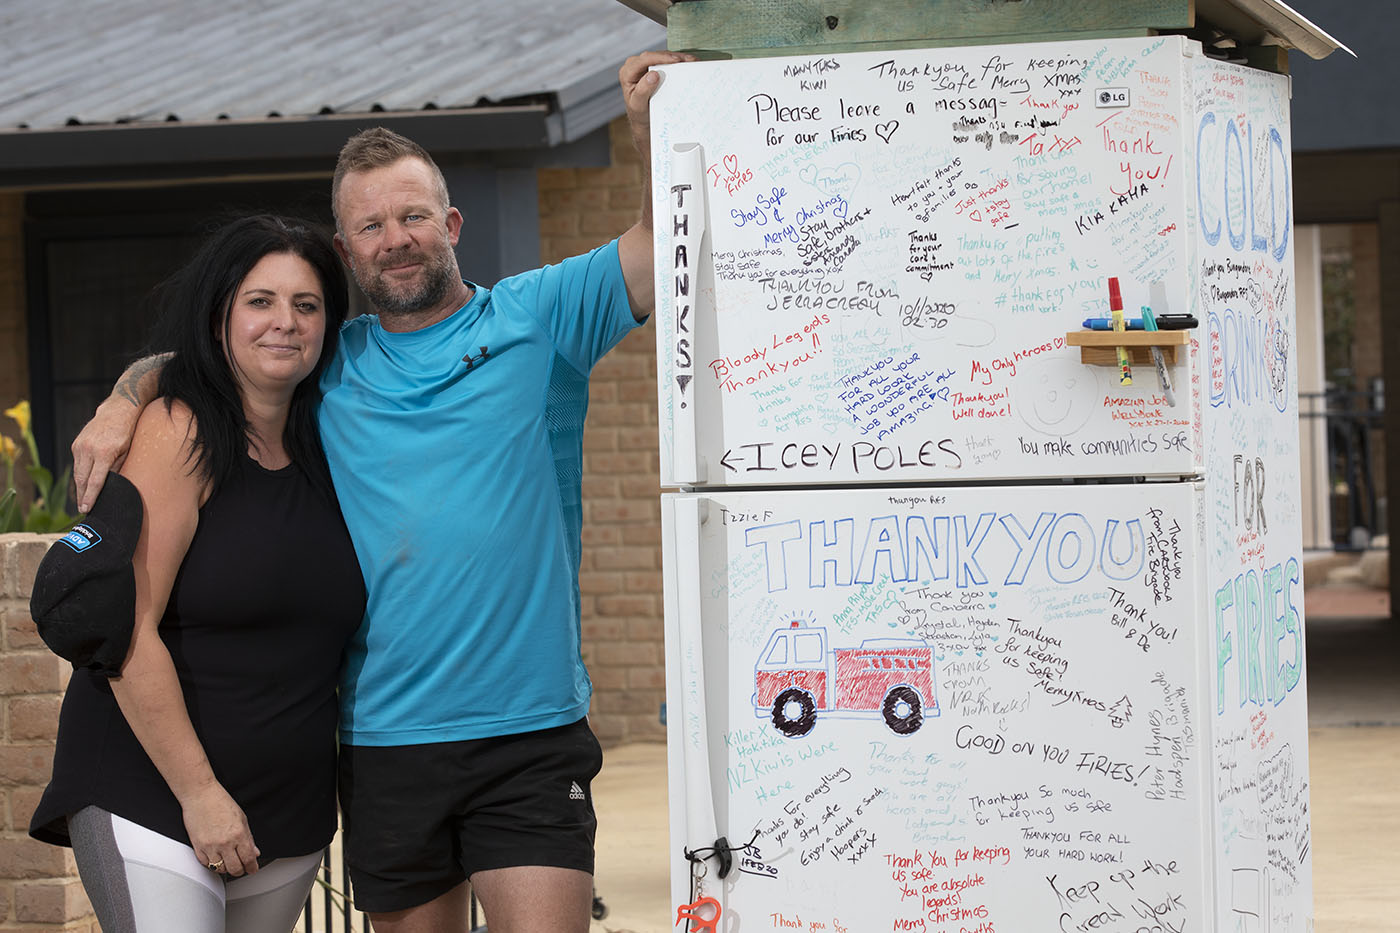 A woman and man stand beside a fridge decorated with messages of support for firefighters. - click to view larger image